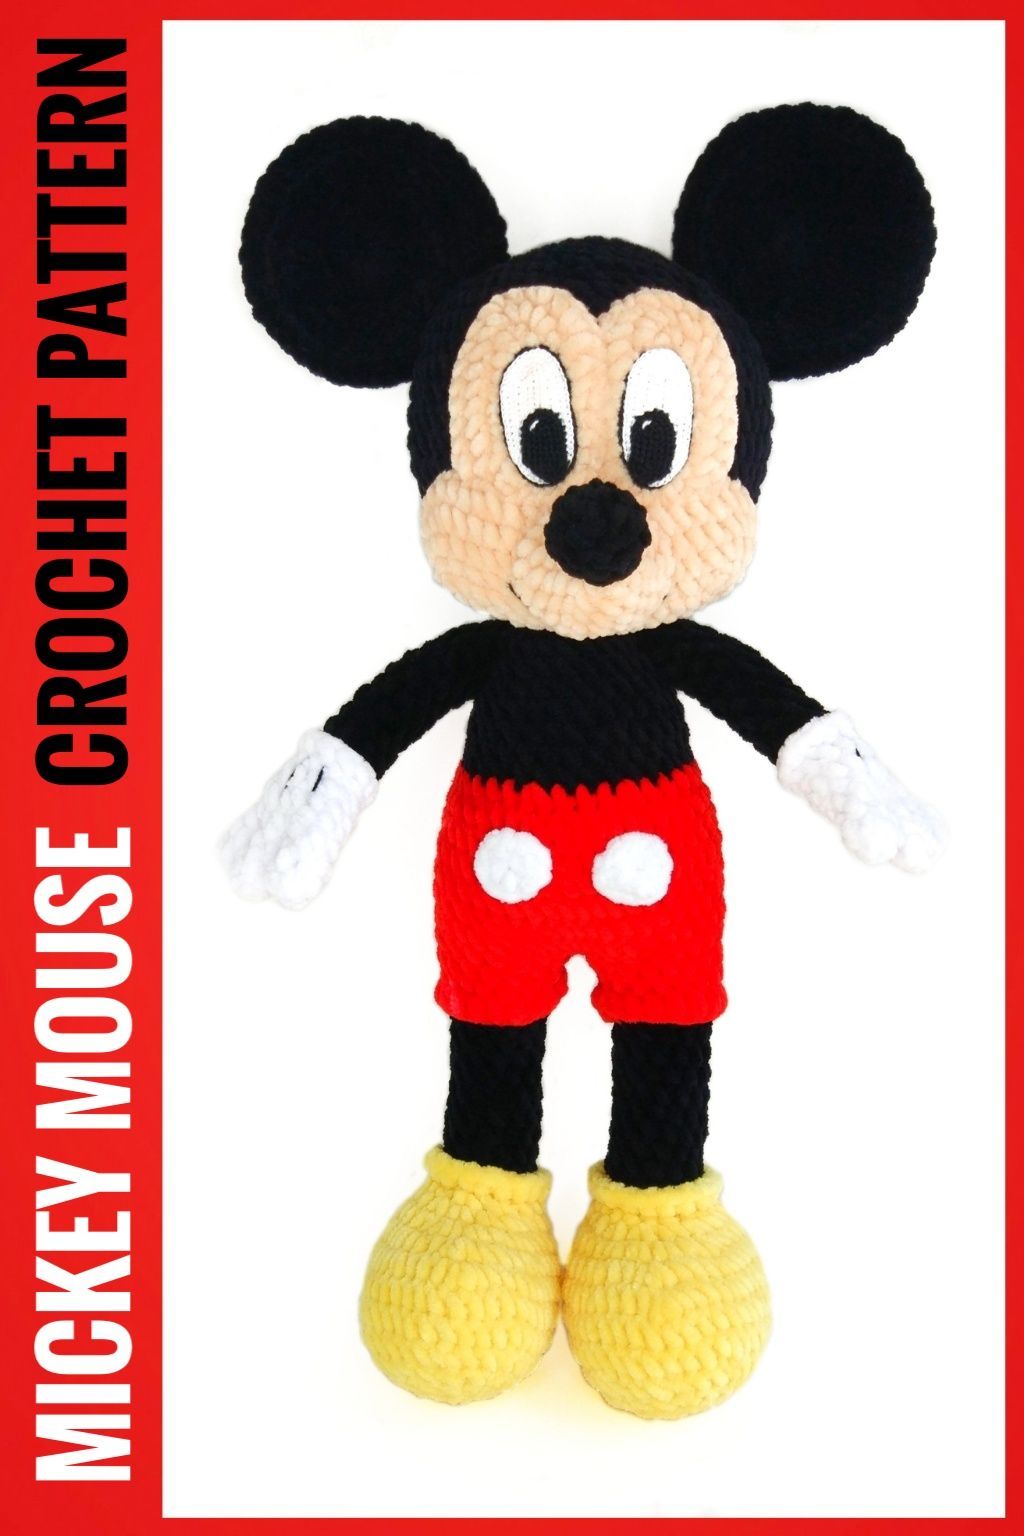 Amigurumi Little Mouse Crochet Free Patterns | Crochet amigurumi ... | 1536x1024